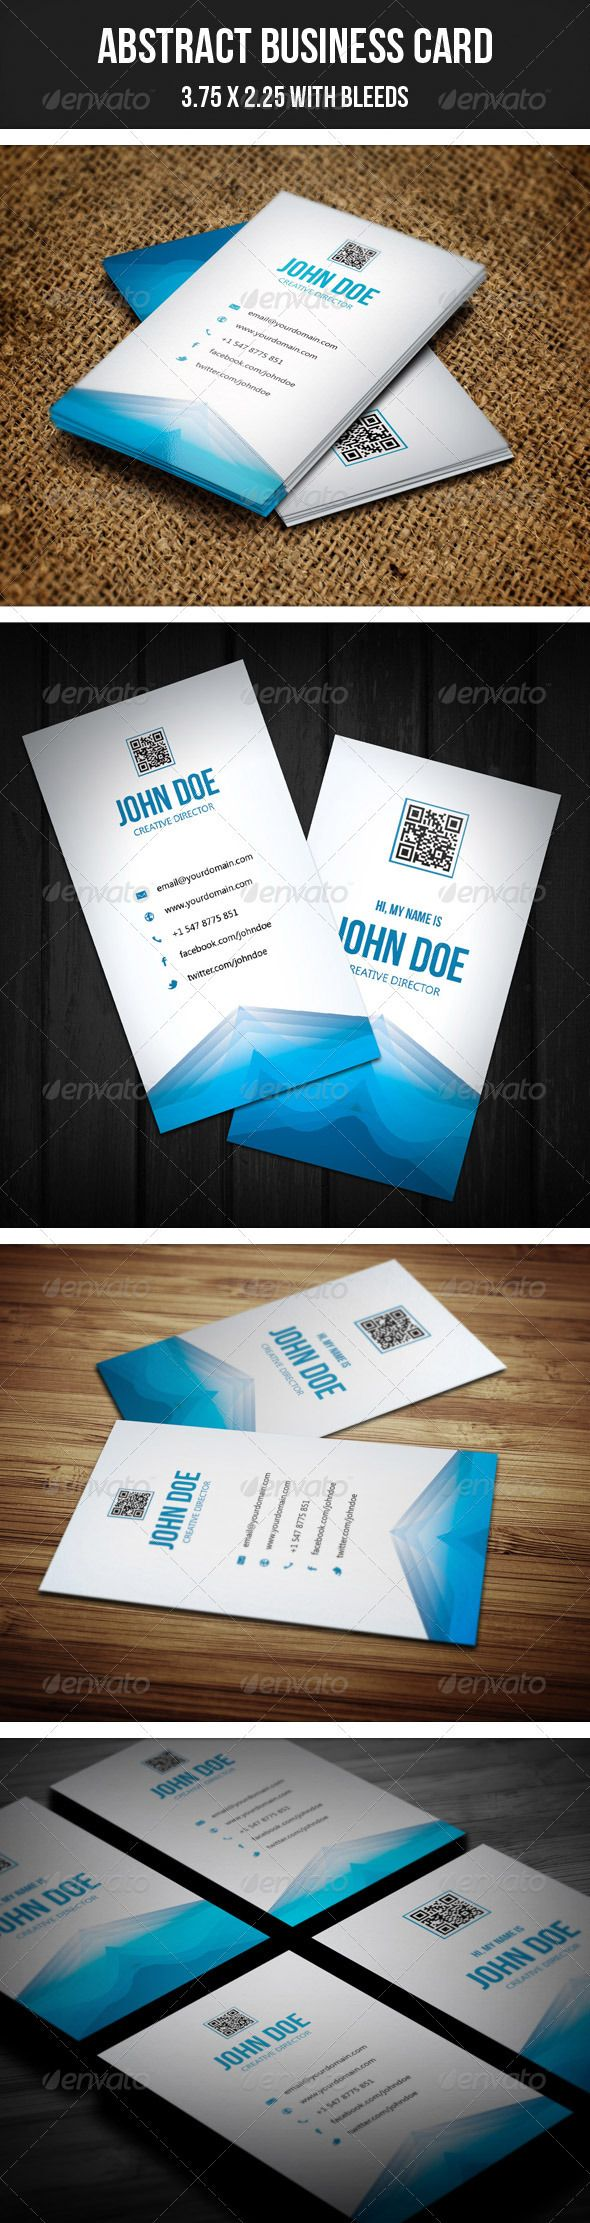 Business card printing free templates from nextdayflyers - Abstact Creative Business Card 28